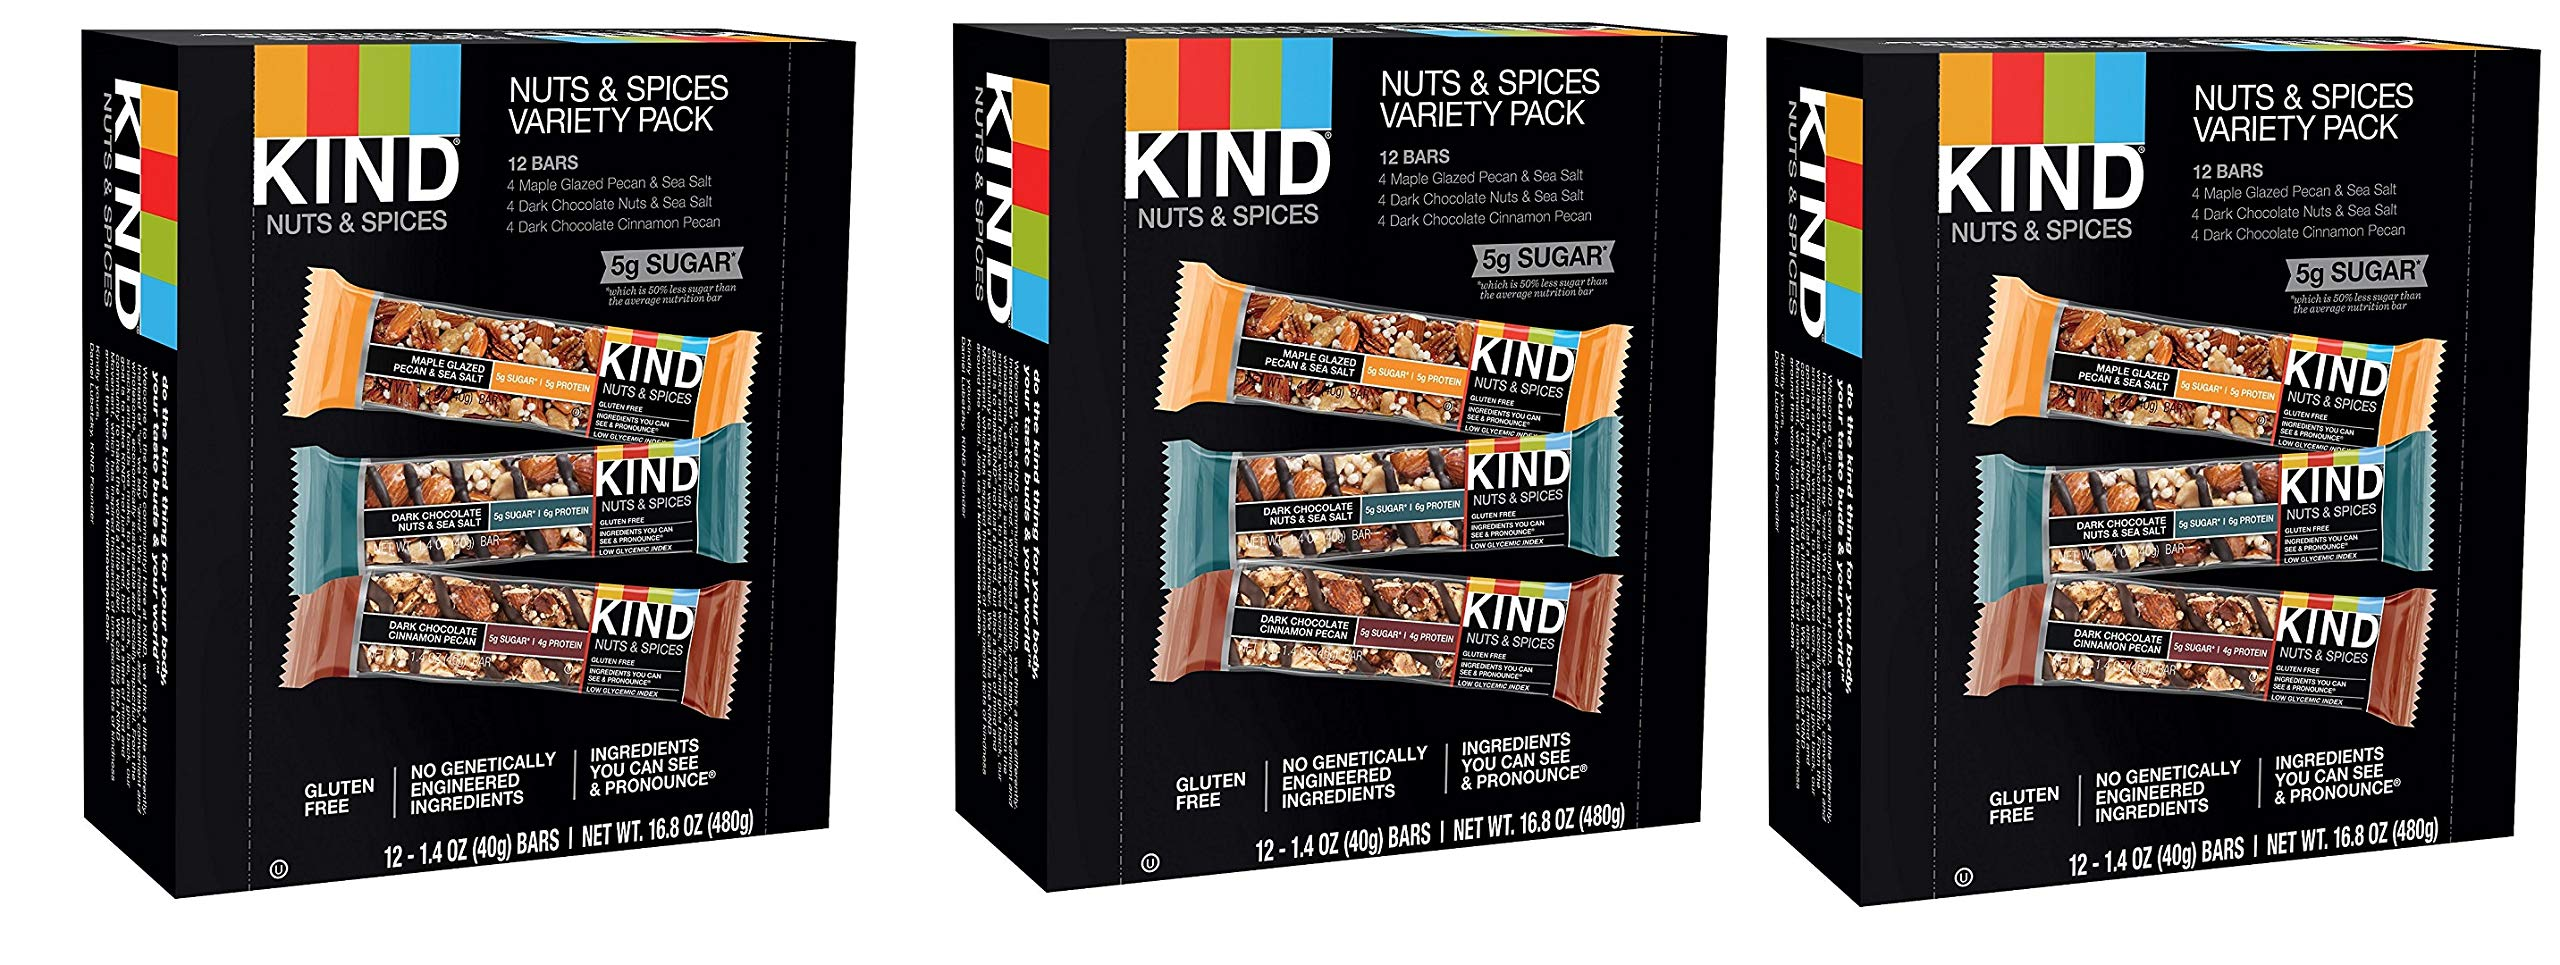 KIND Bars, Nuts and Spices Variety Pack, Gluten Free, 1.4oz (36 Bars) by  (Image #1)